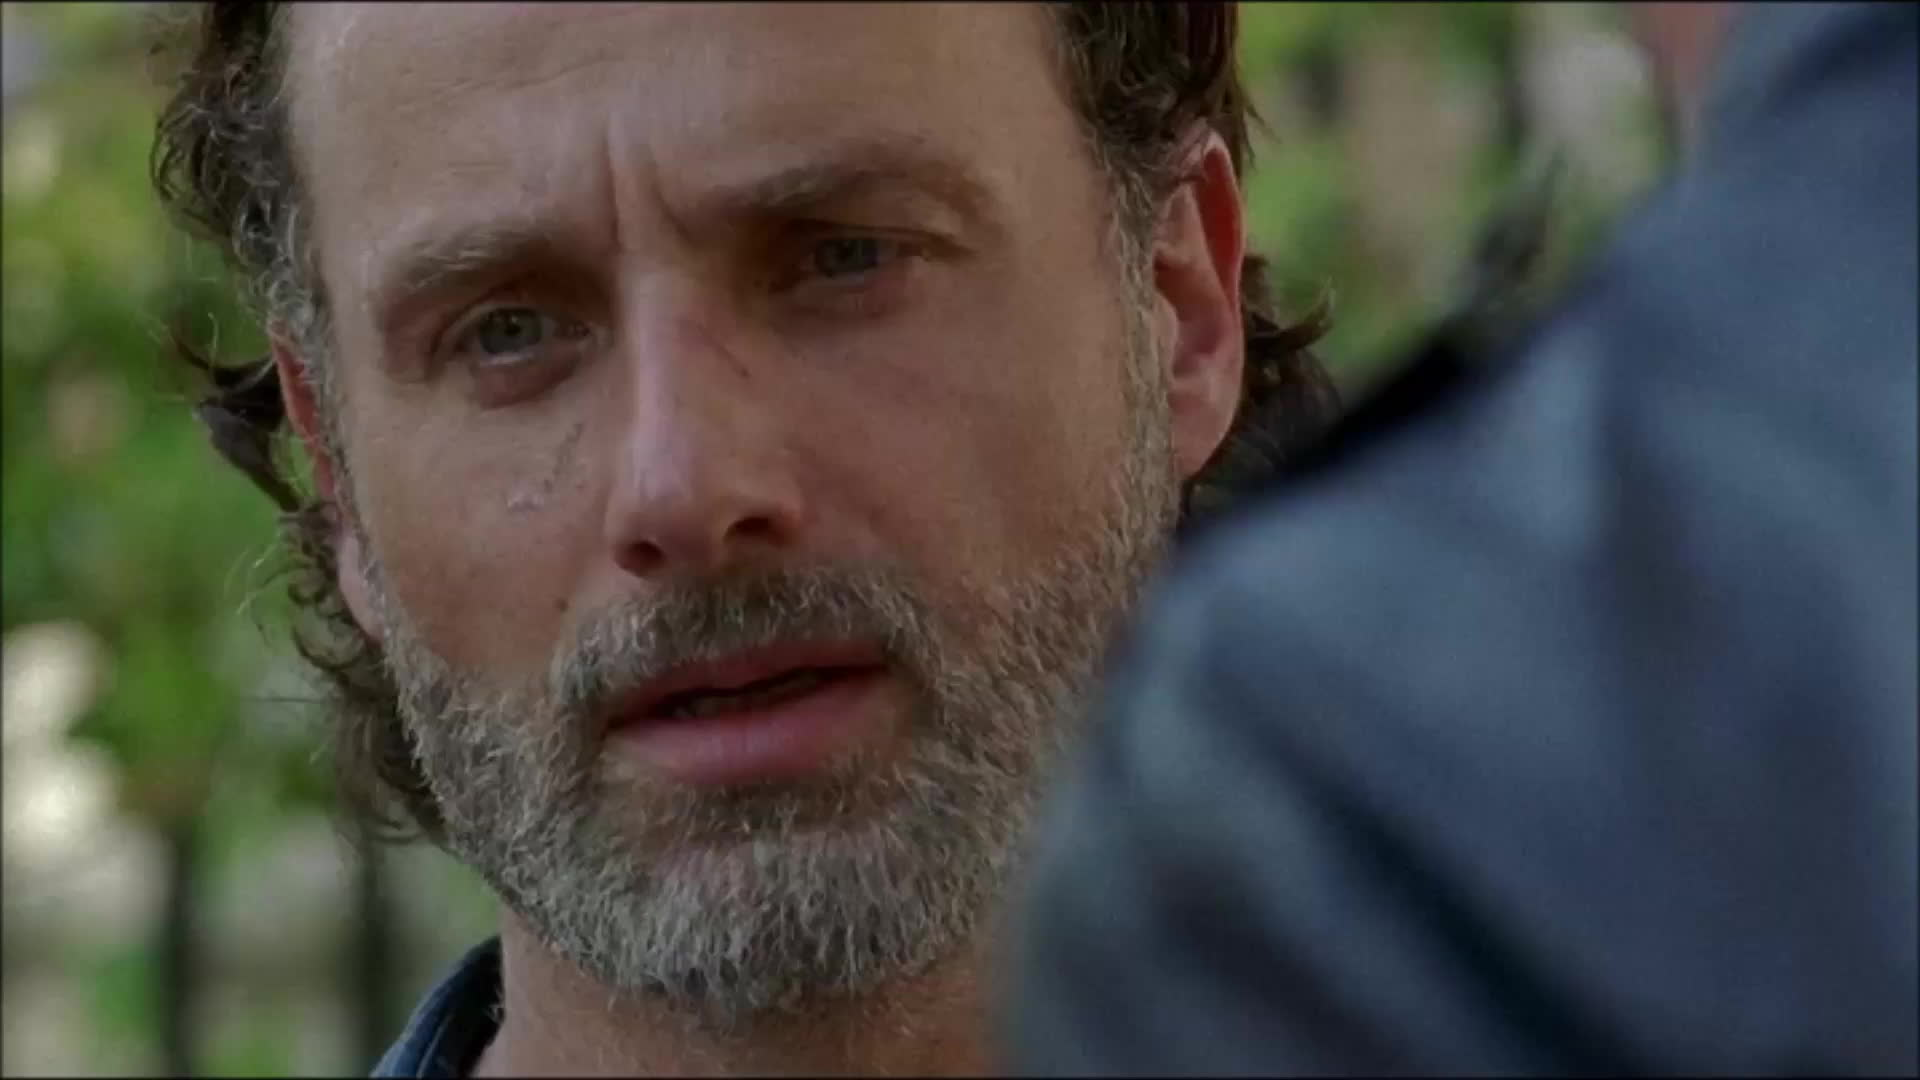 Andrew Lincoln, side eye, side glance, thewalkingdeadseason7ep4, twd, twds7ep4, The Walking Dead season 7 ep4 GIFs